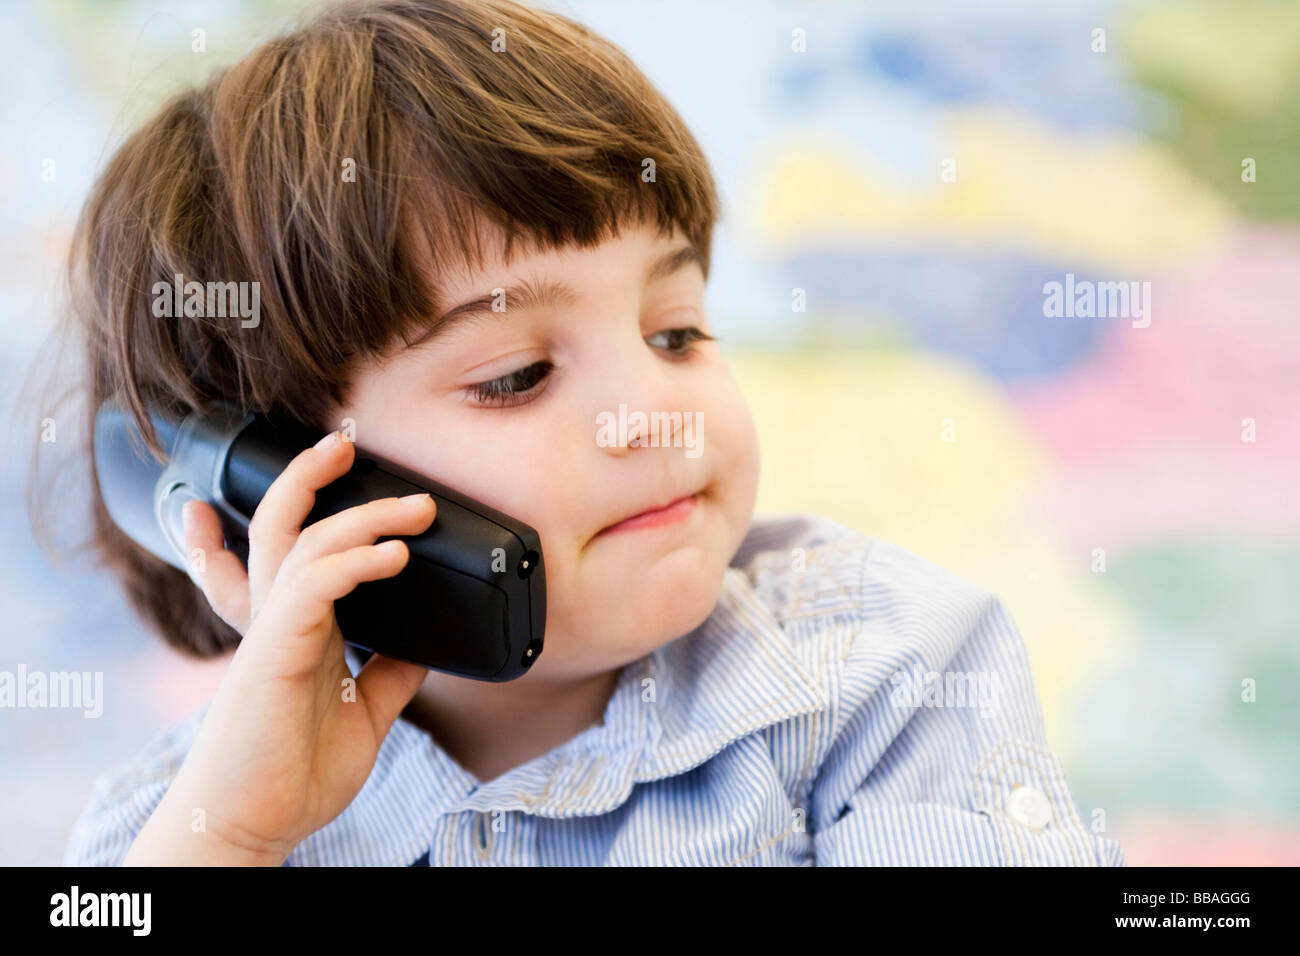 young boy phoning - Stock Image